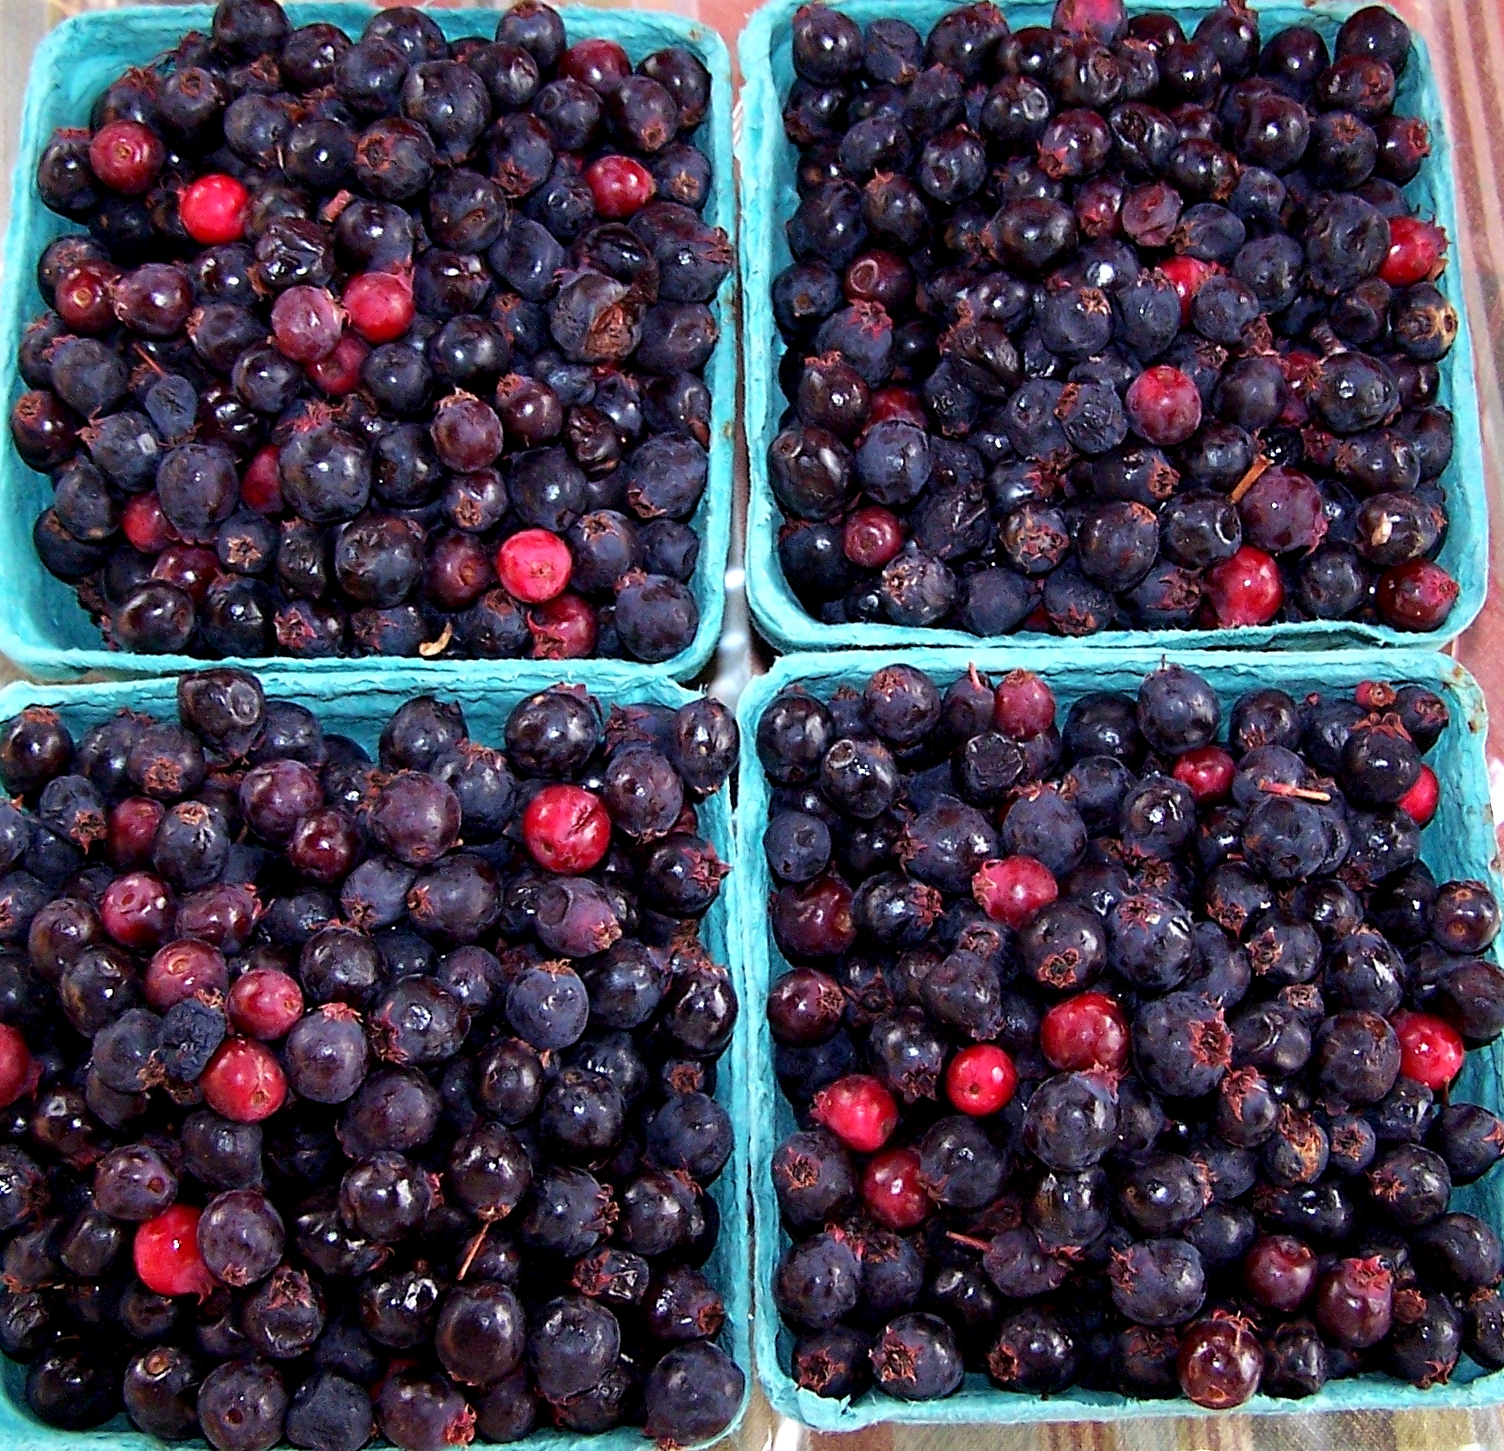 Saskatoon berries from Foraged & Found Edibles. Photo copyright 2010 by Zachary D. Lyons.